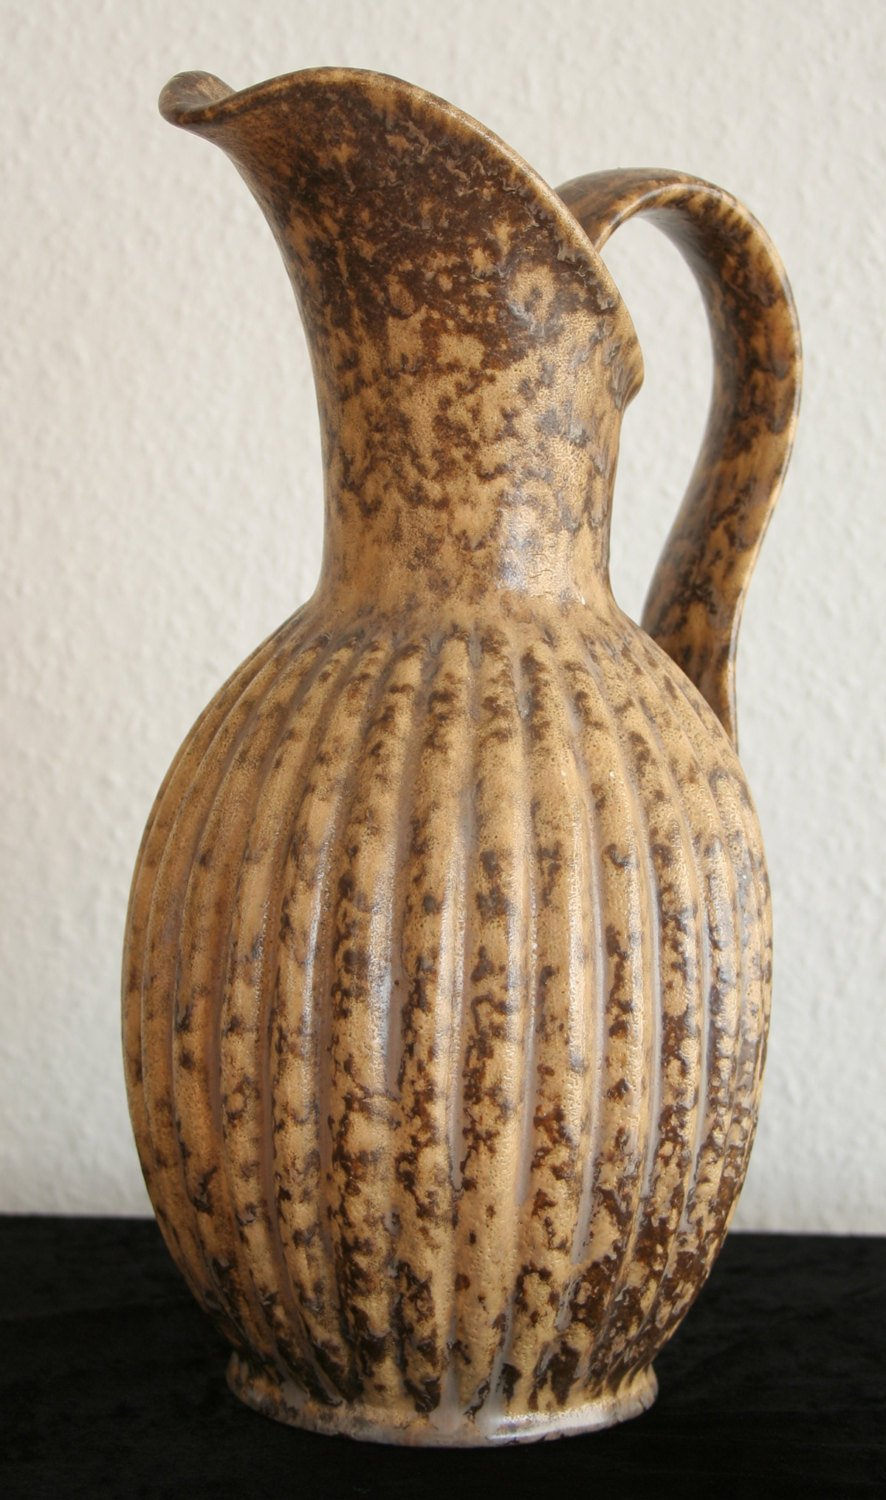 MICHAEL ANDERSEN Large Ribbed Brown Glazed Ceramic Pitcher Vase - Mollaris.com